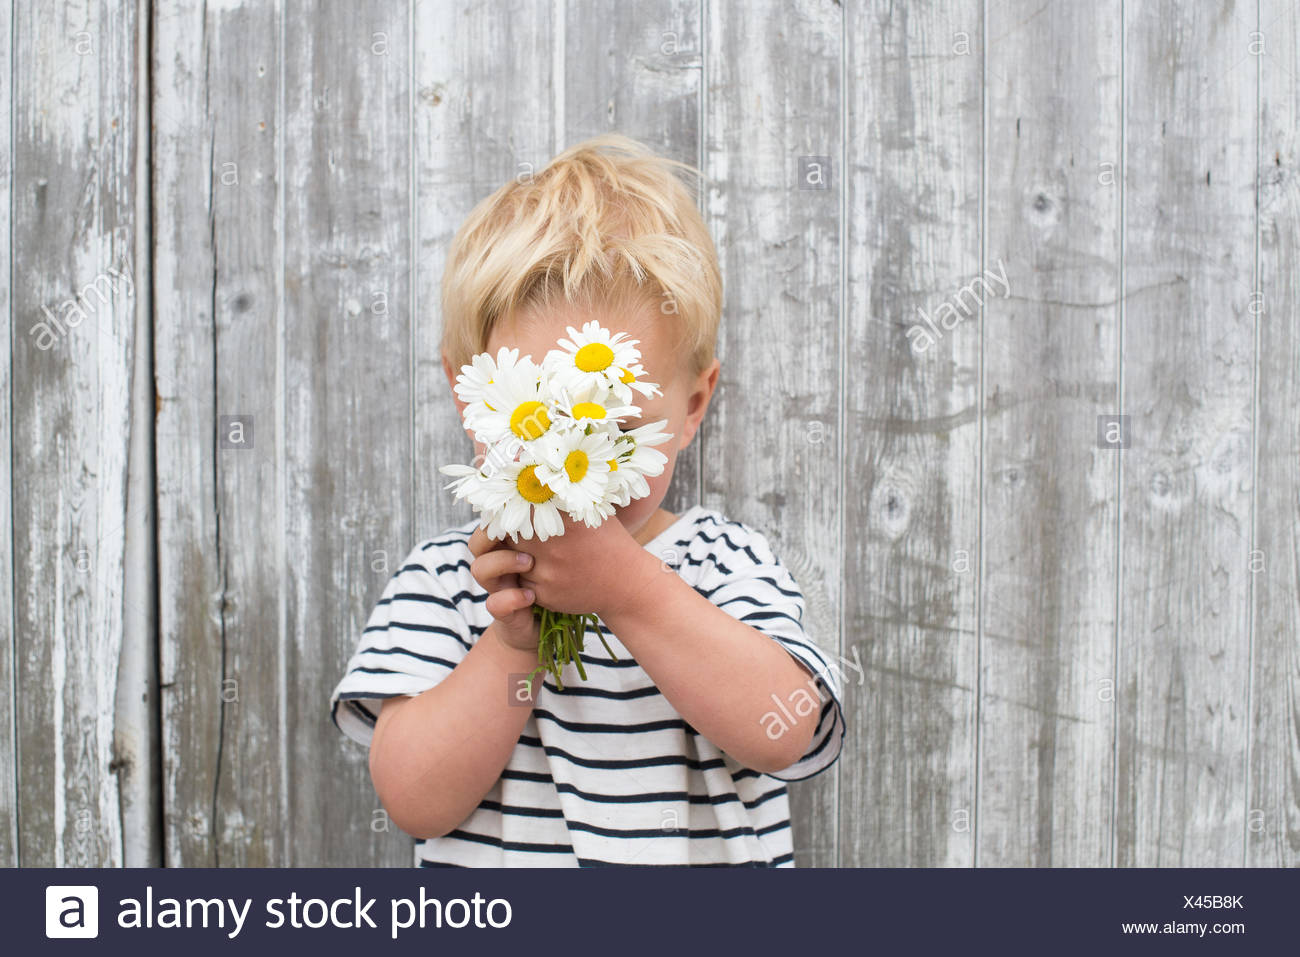 Boy hiding behind daisies - Stock Image